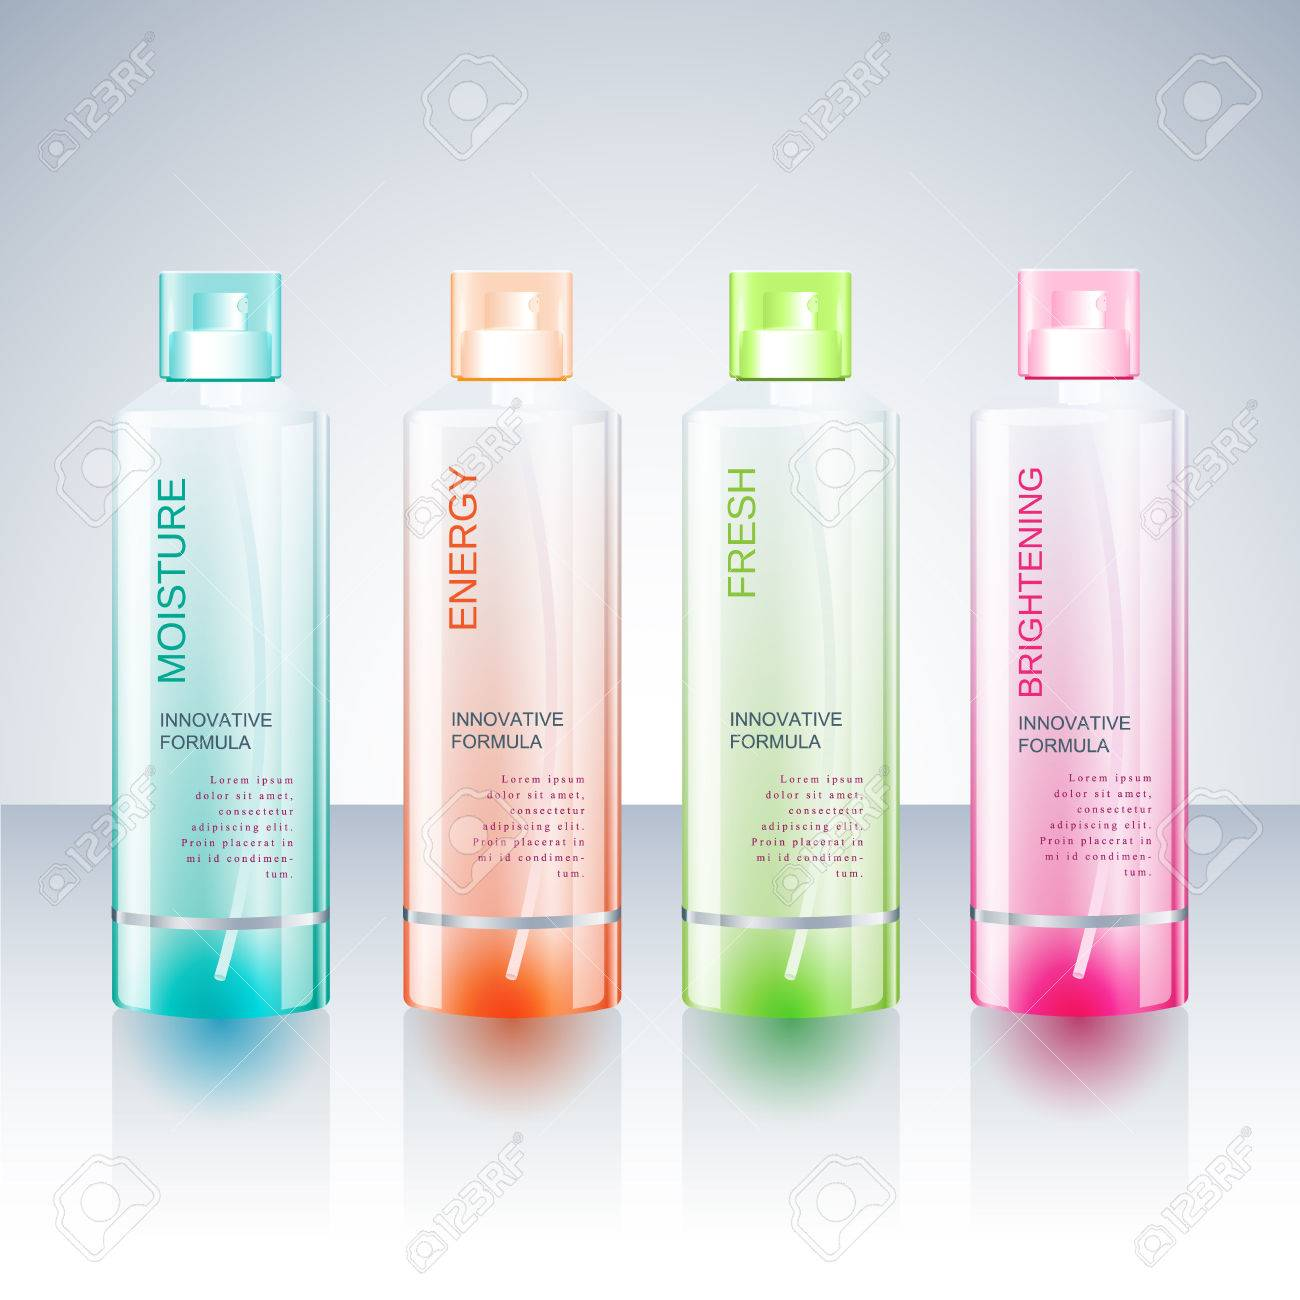 packaging design template for body care bottle royalty free cliparts